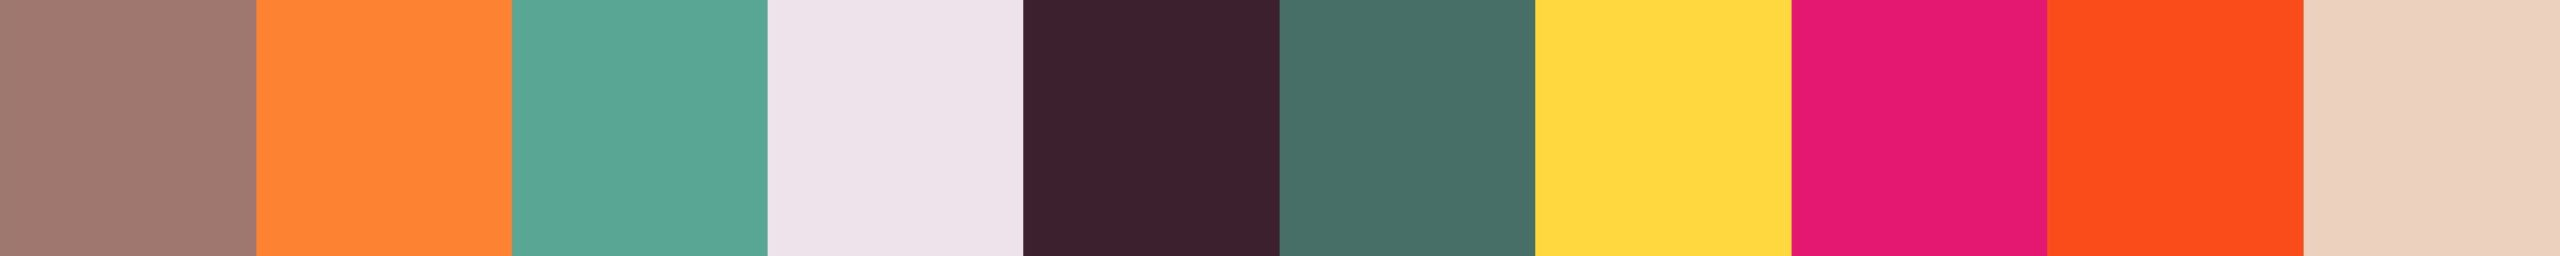 518 Aurnia Color Palette